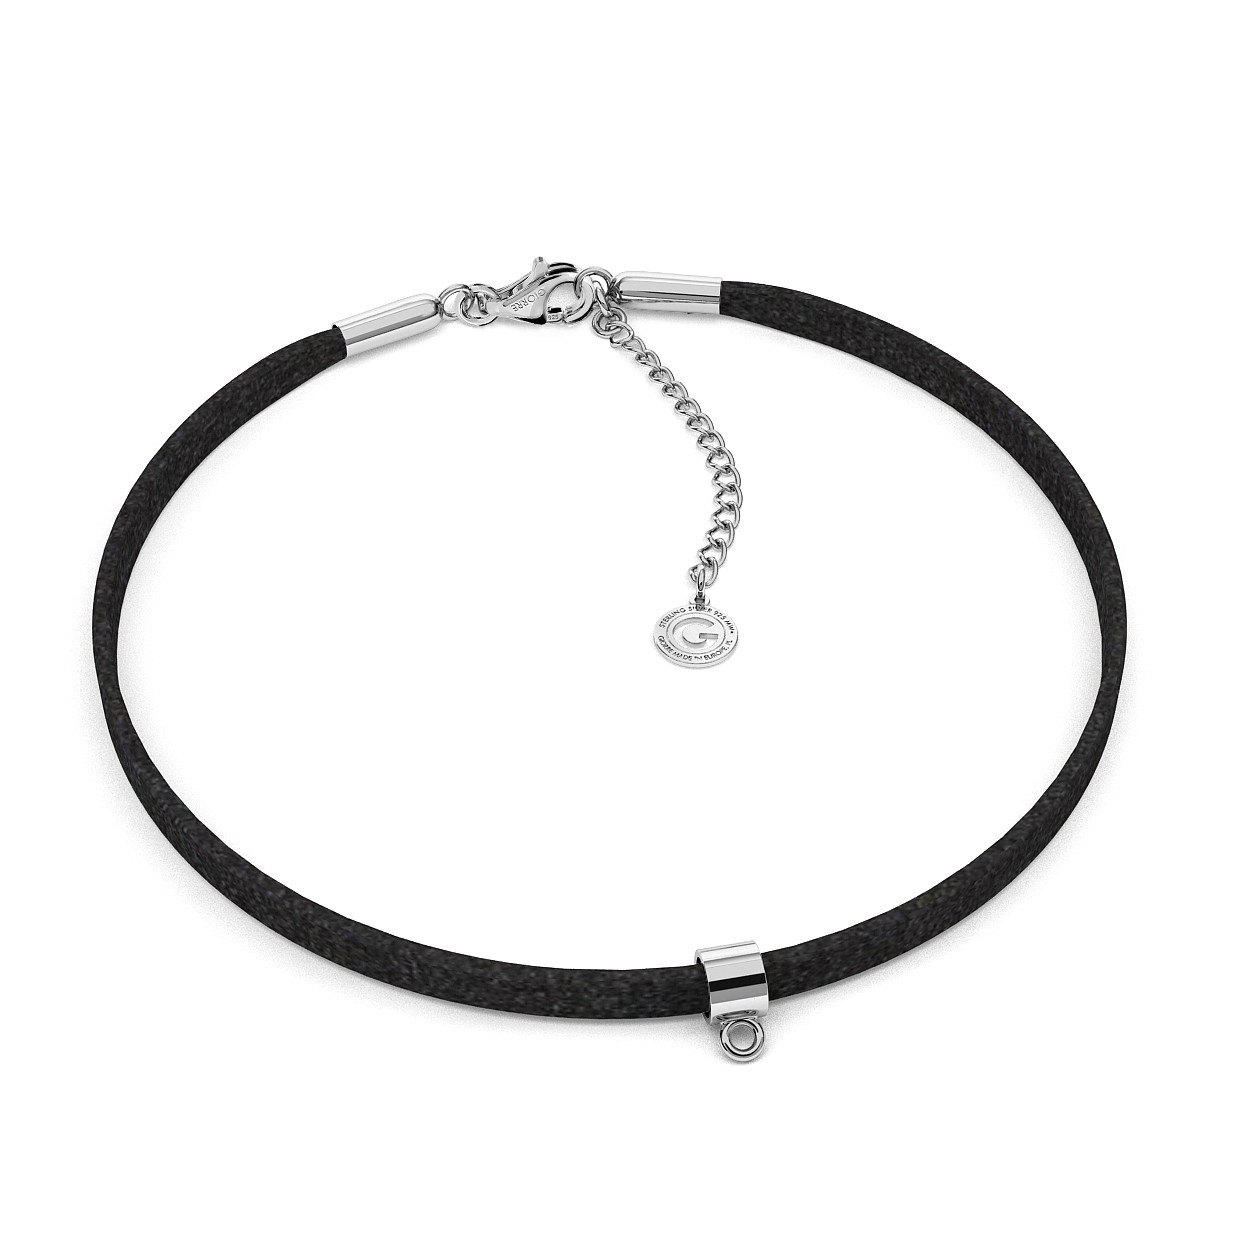 CHOKER NECKLACE GIORRE WITH ALCANTARA, BASE FOR CHARMS